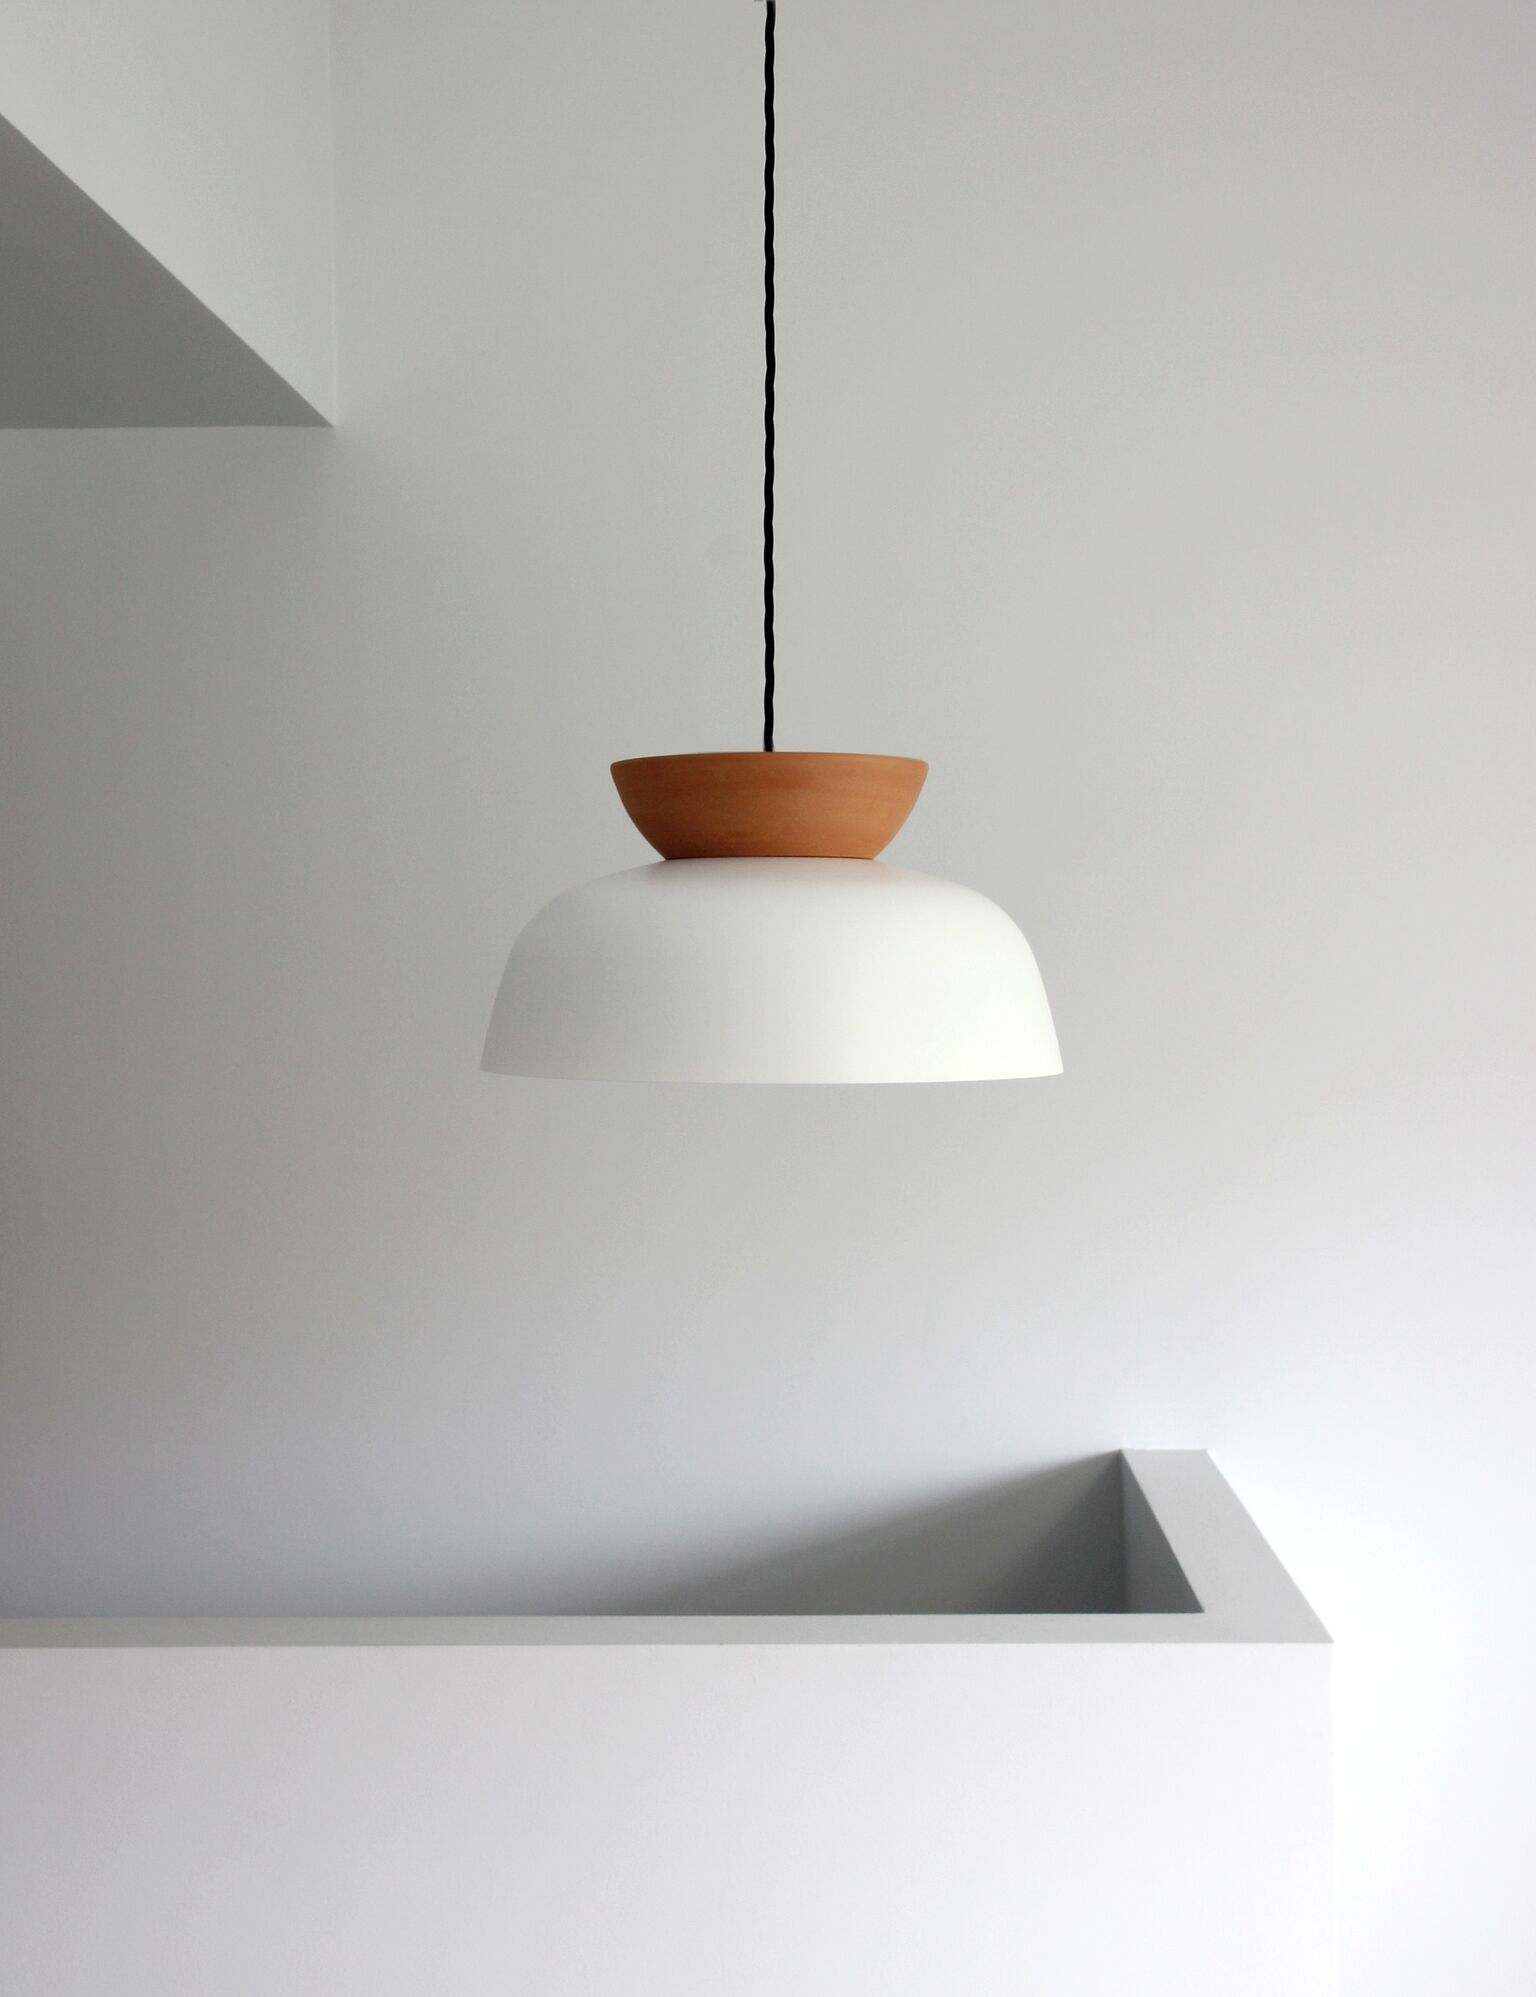 Gallery Of Hat Pendant By Lumil Local Australian Lighting Industrial Residential Design Kensington Melbourne Image 10